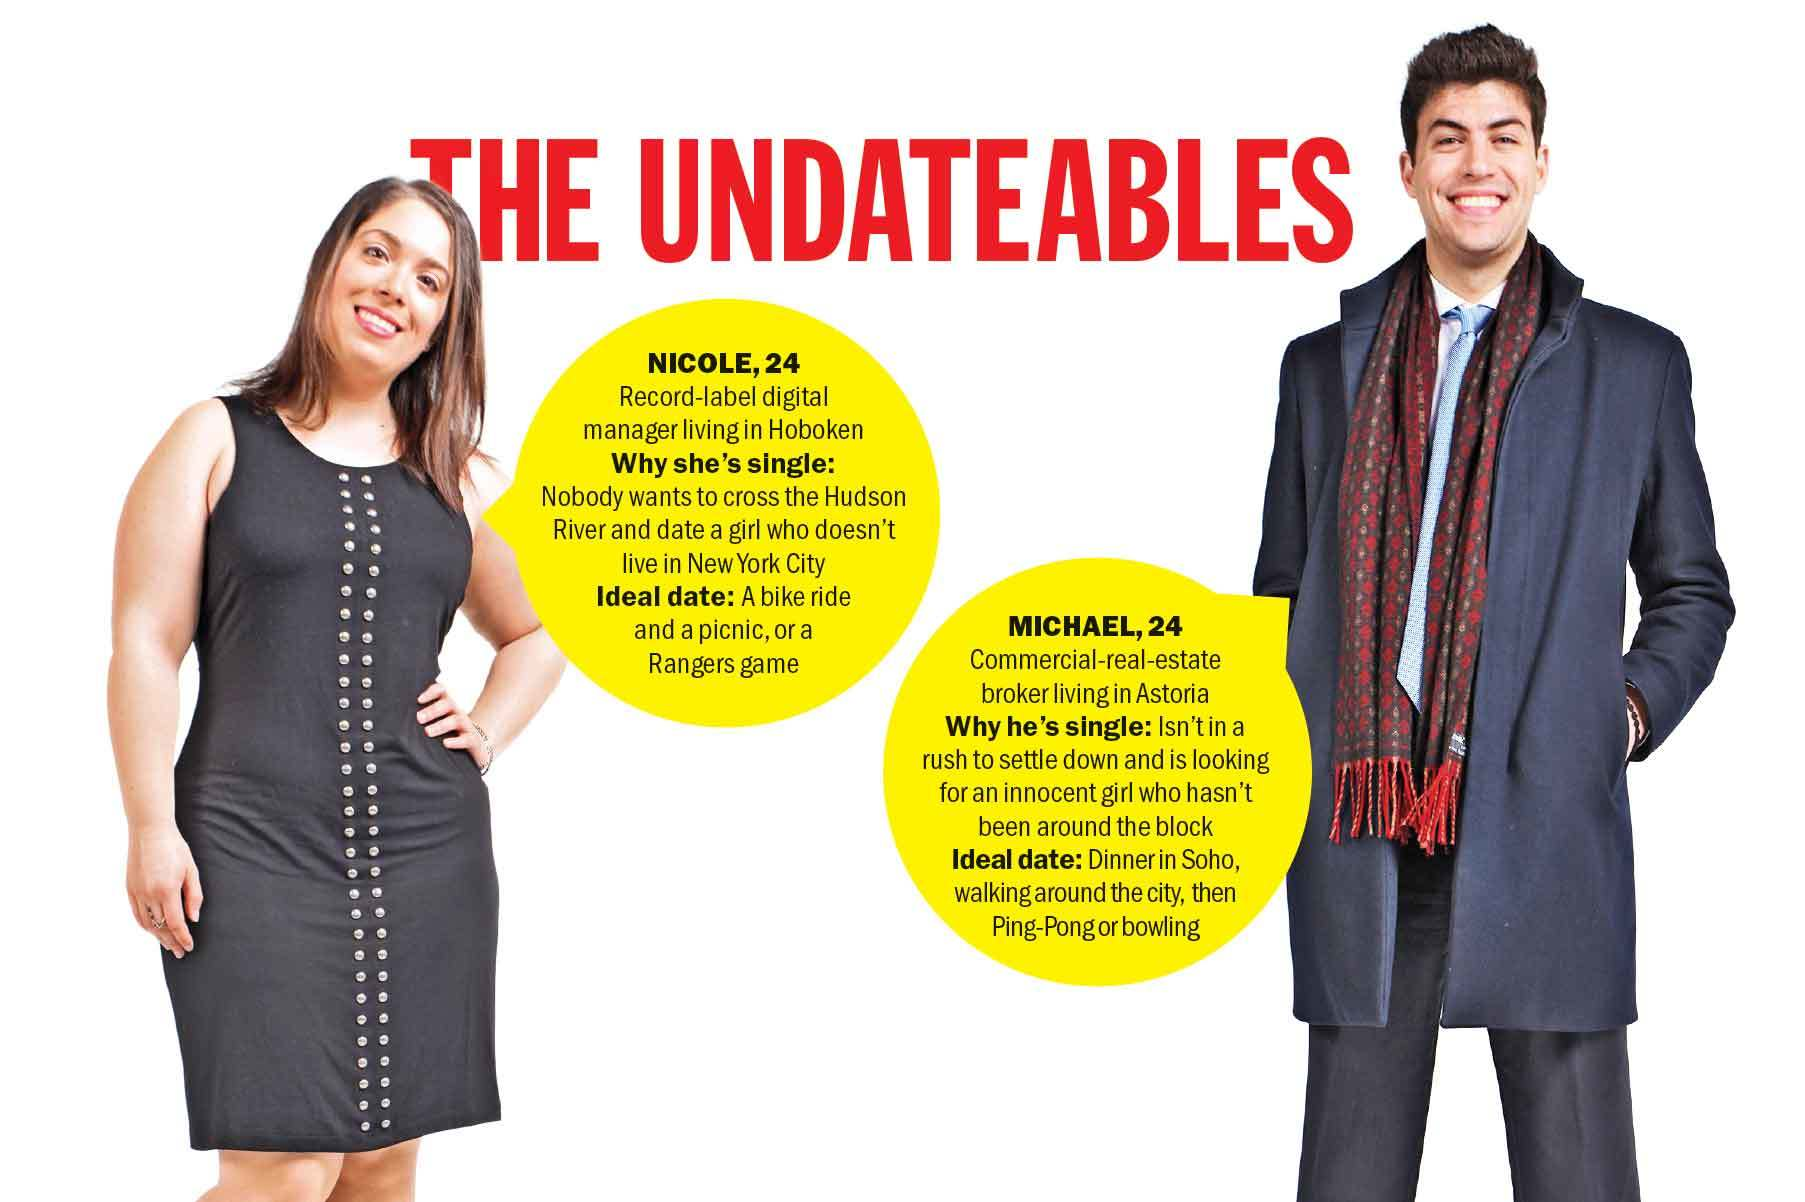 Meet the Undateables: Nicole and Michael